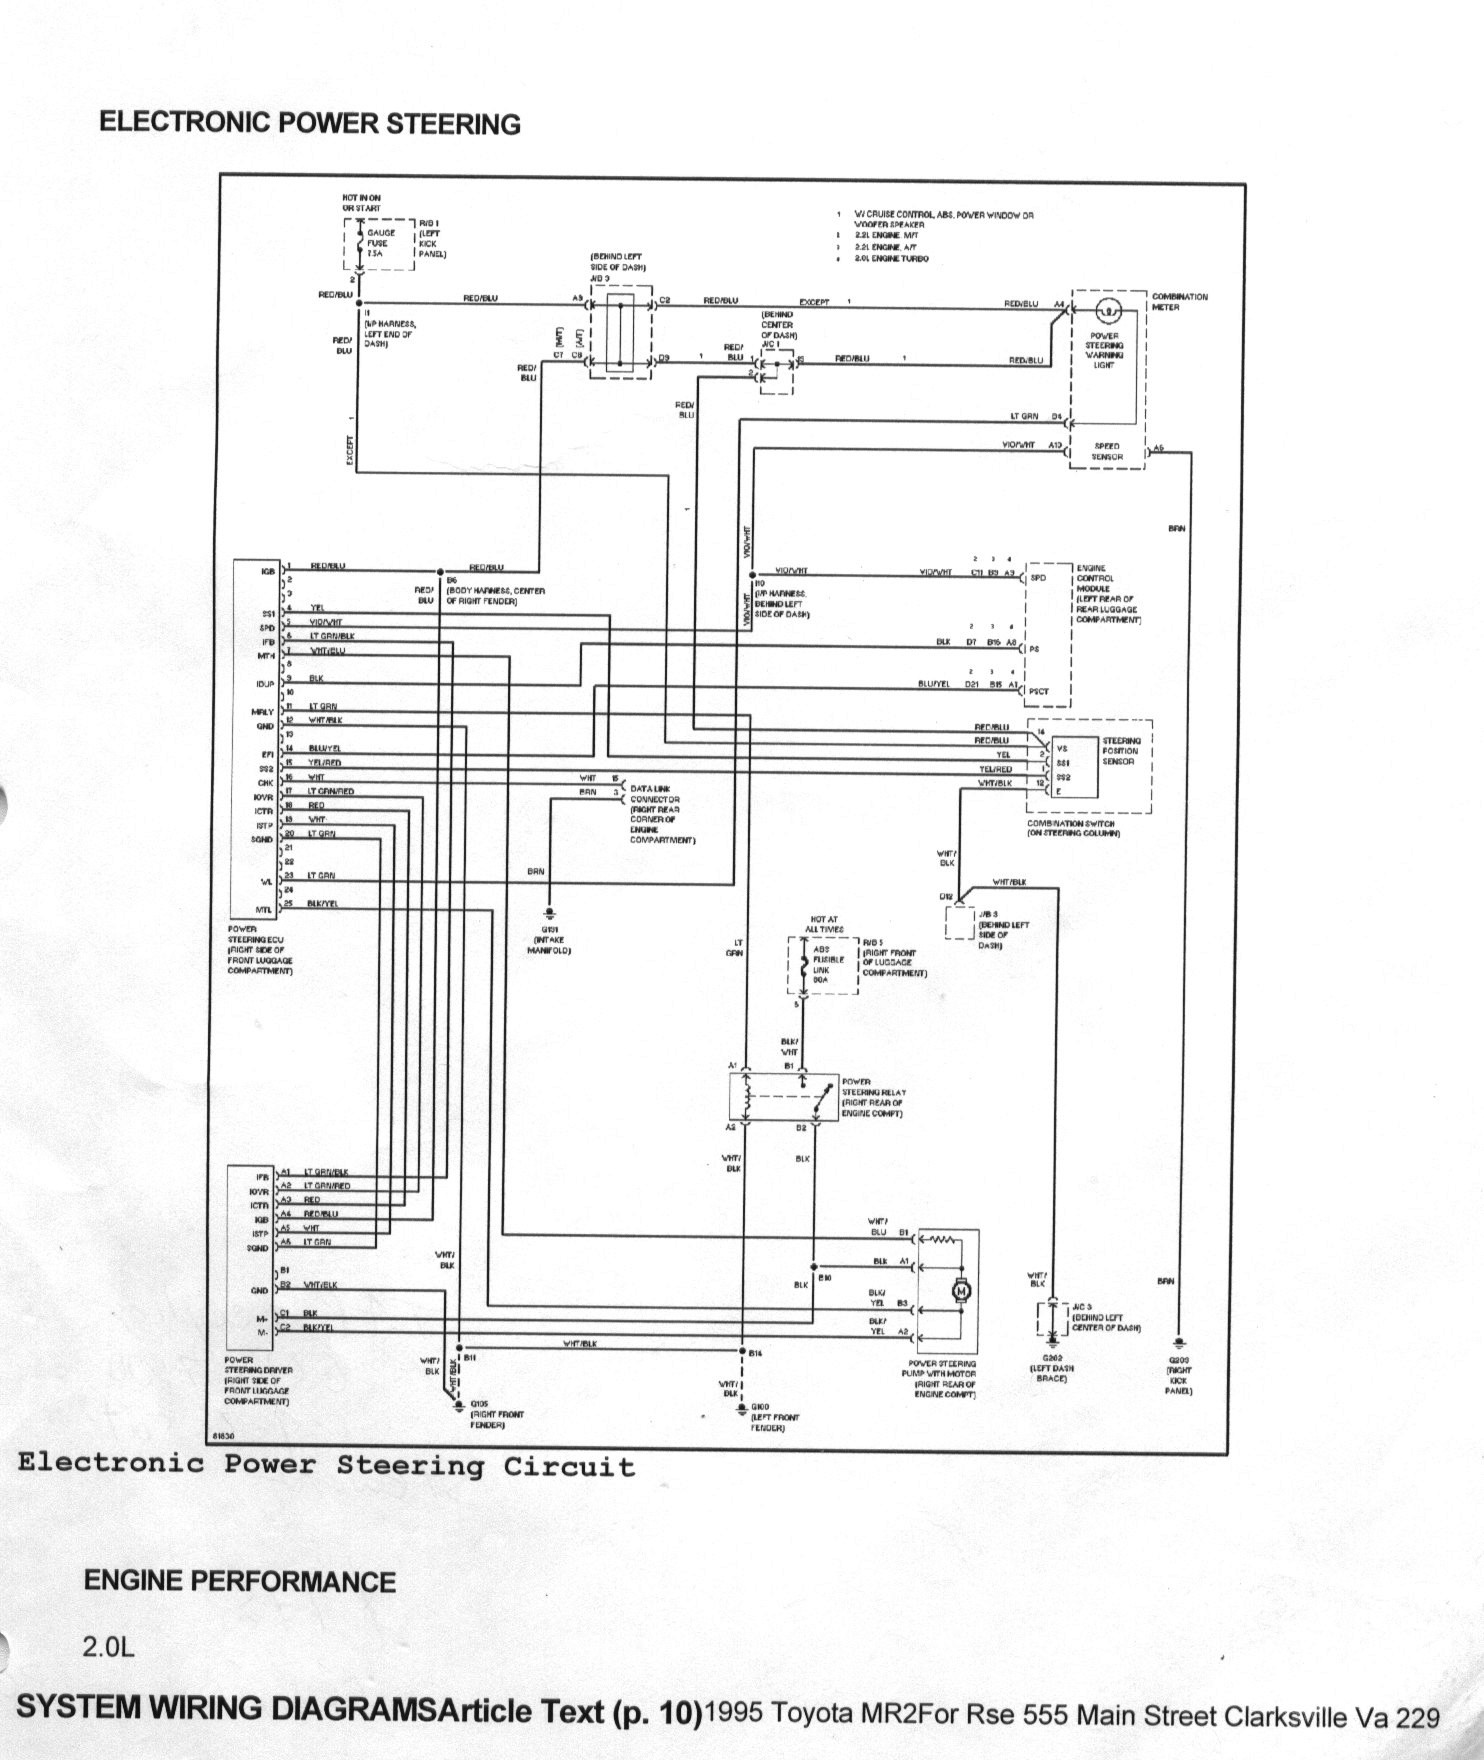 OE_2769] Further Ford Ignition Wiring Diagram On 91 Toyota Mr2 Engine  Diagrams Free Diagram | 93 Mr2 Ecu Wiring Diagram |  | Inrebe Vira Mohammedshrine Librar Wiring 101